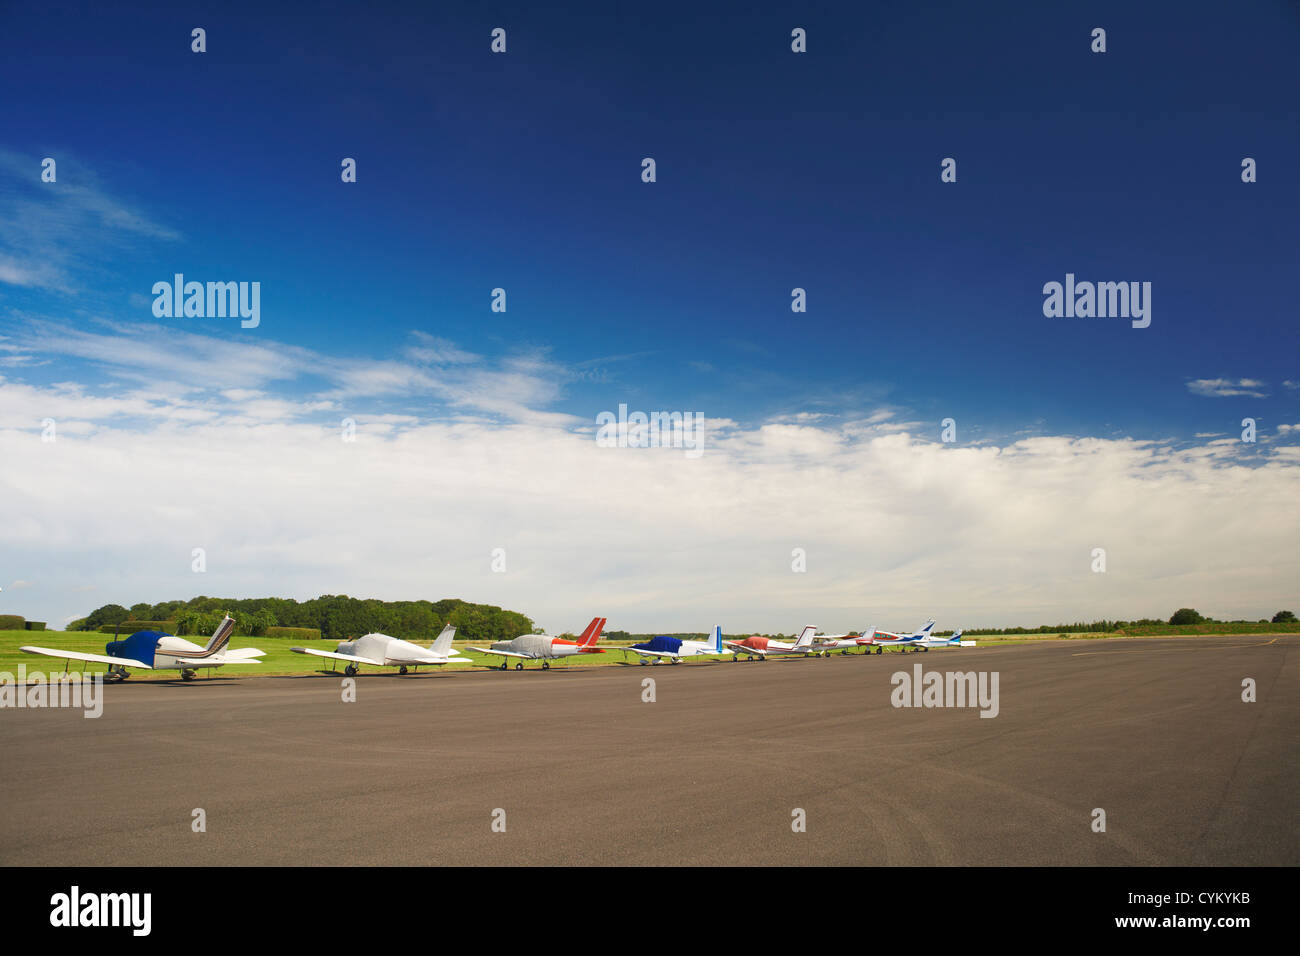 Airplanes parked on airstrip - Stock Image